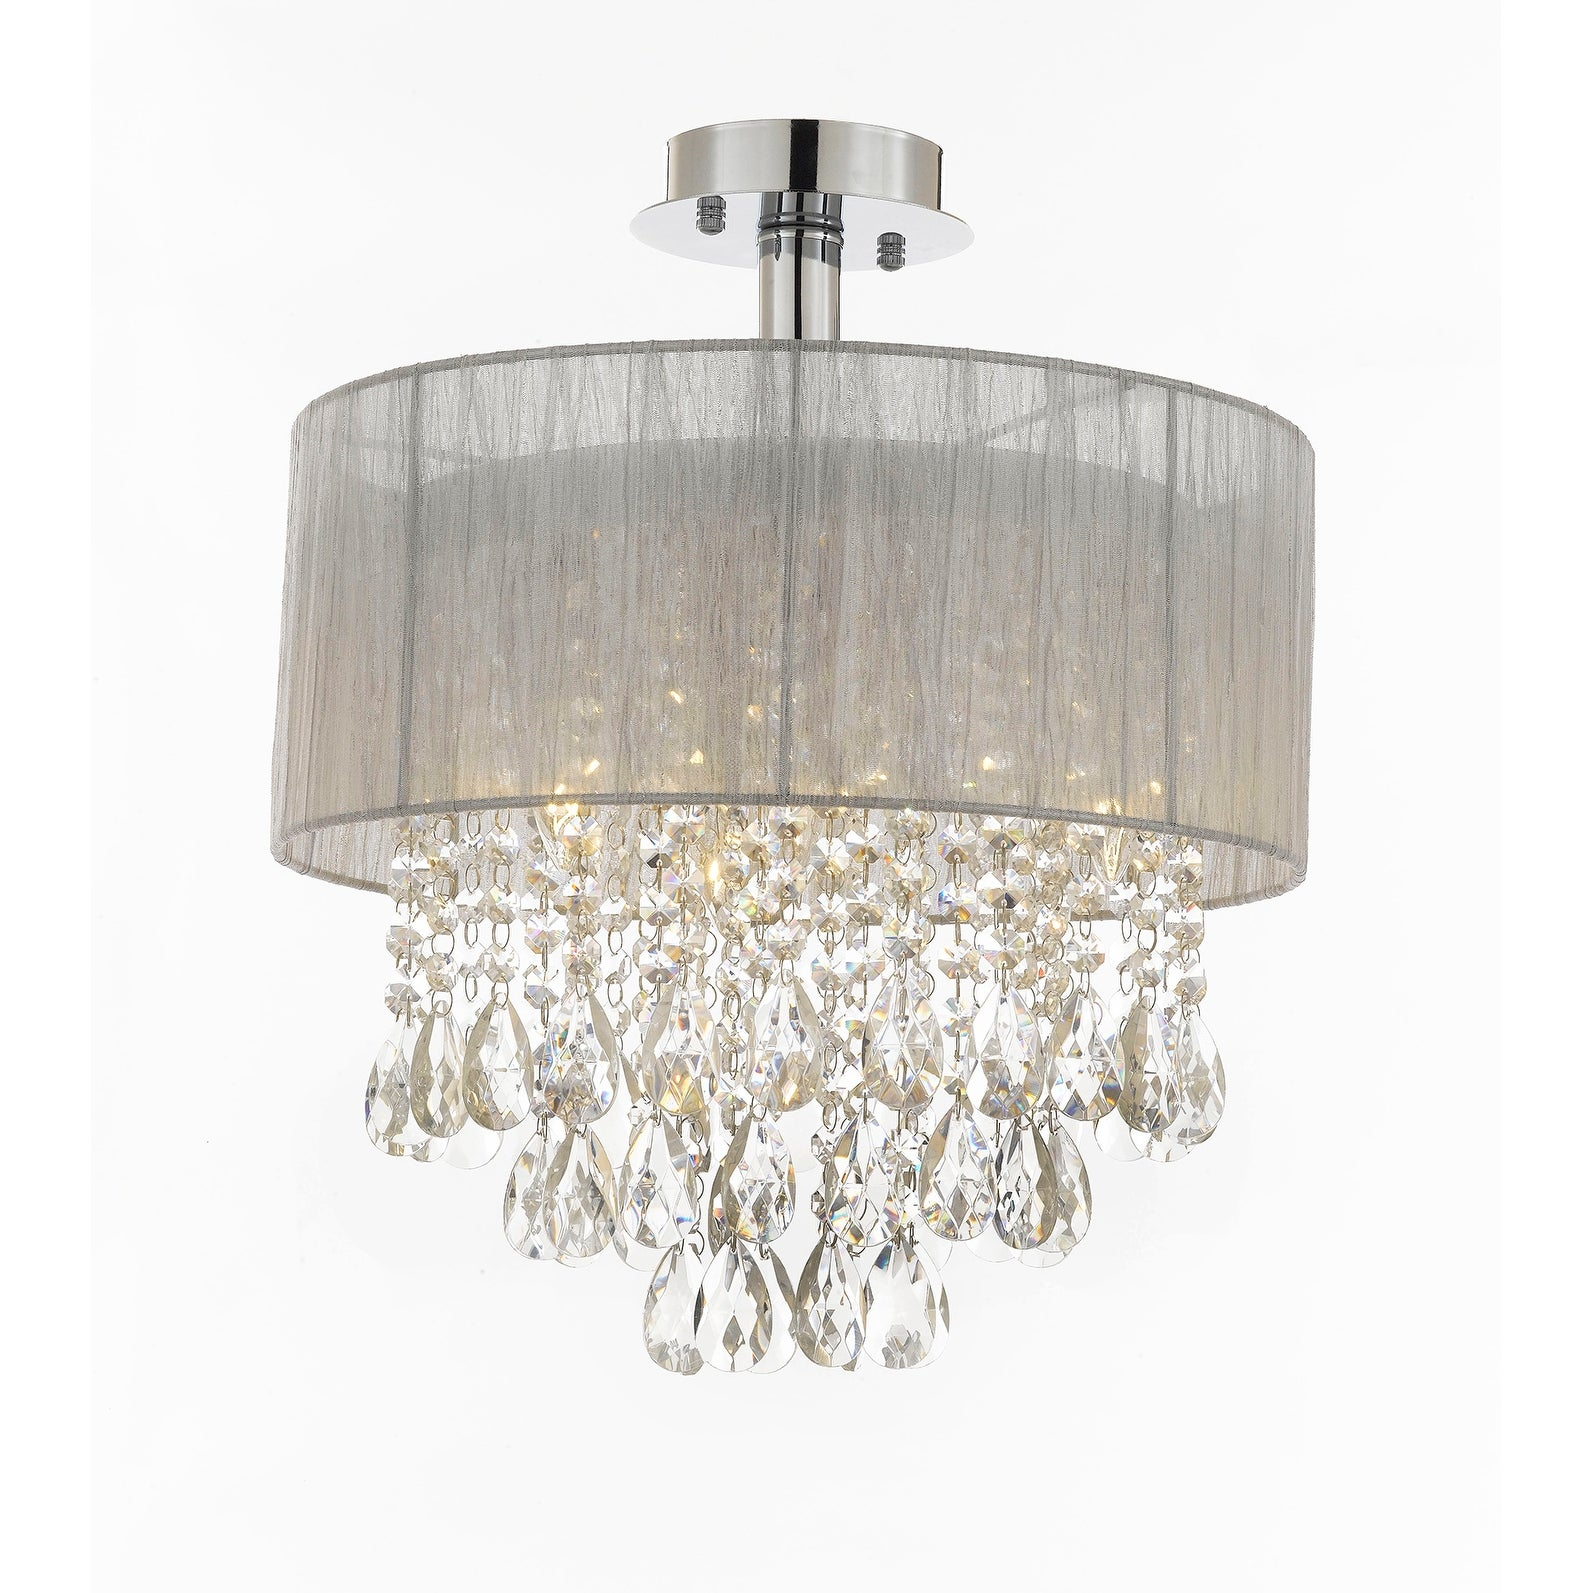 fixture for shell pendant white bedroom bulb style mini not chandelier room dp living ceiling capiz included light finish chrome modern lightinthebox